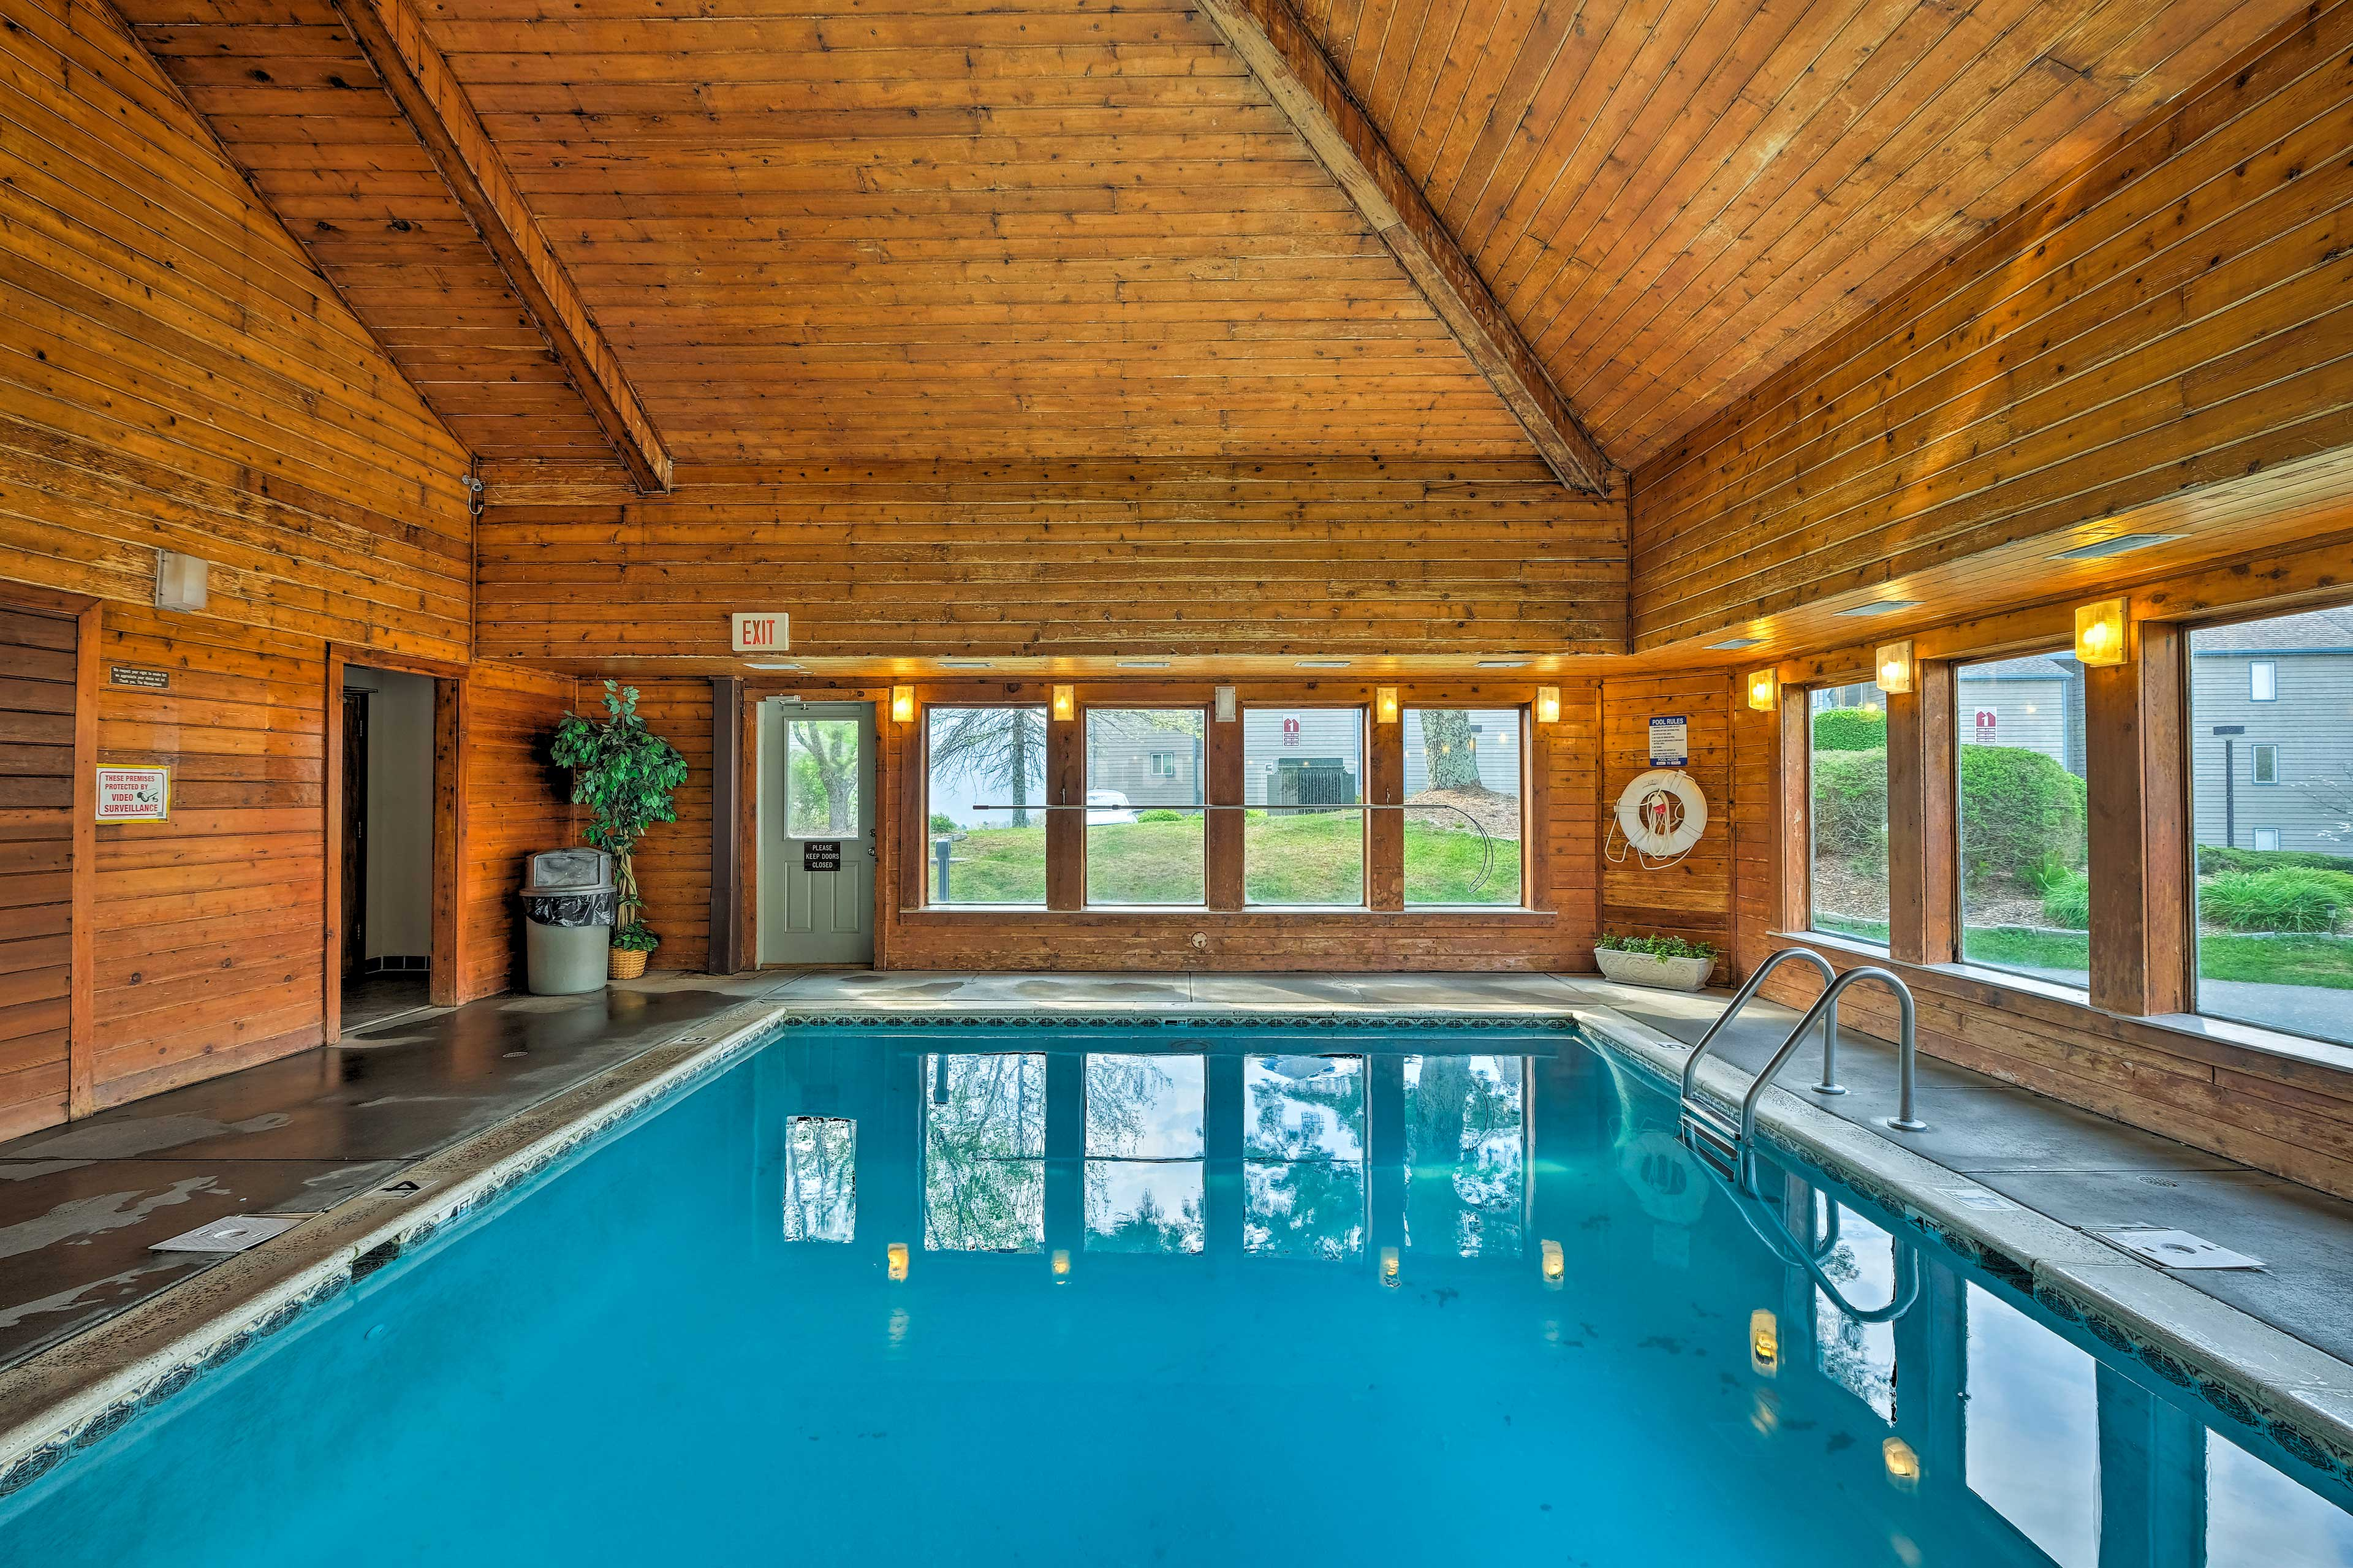 Community amenities include this stunning pool.